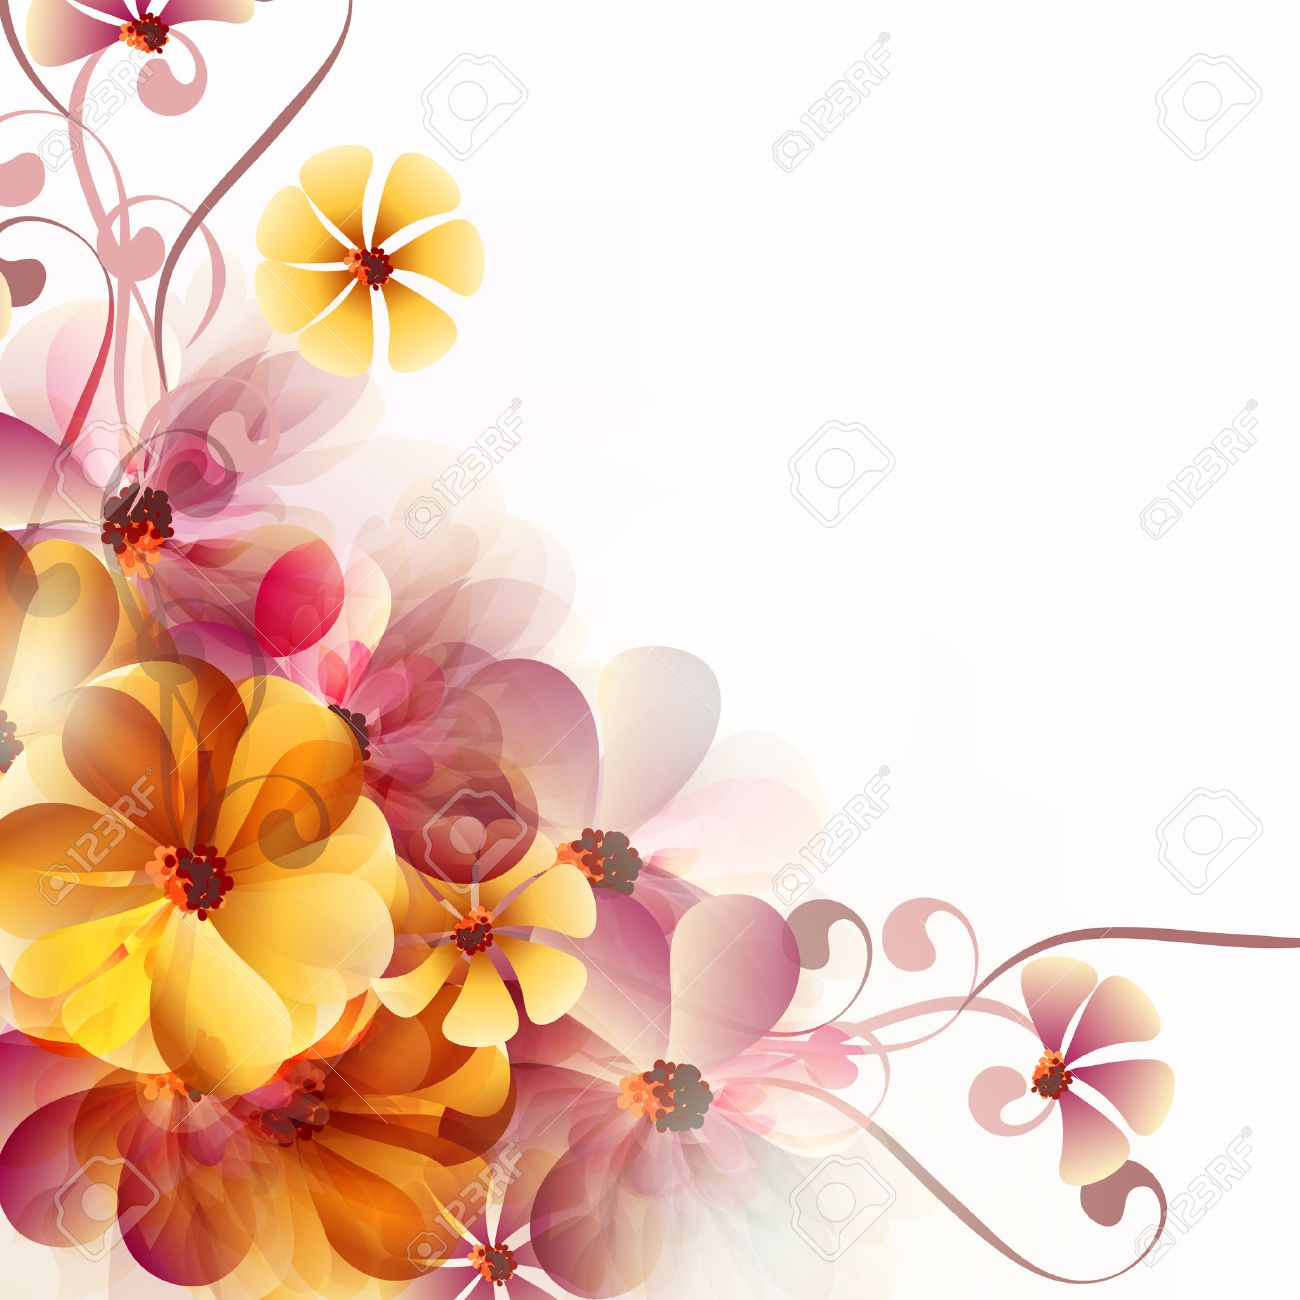 Abstract Floral Vector Background With Pink And Orange Flowers Royalty Free Cliparts Vectors And Stock Illustration Image 47750826